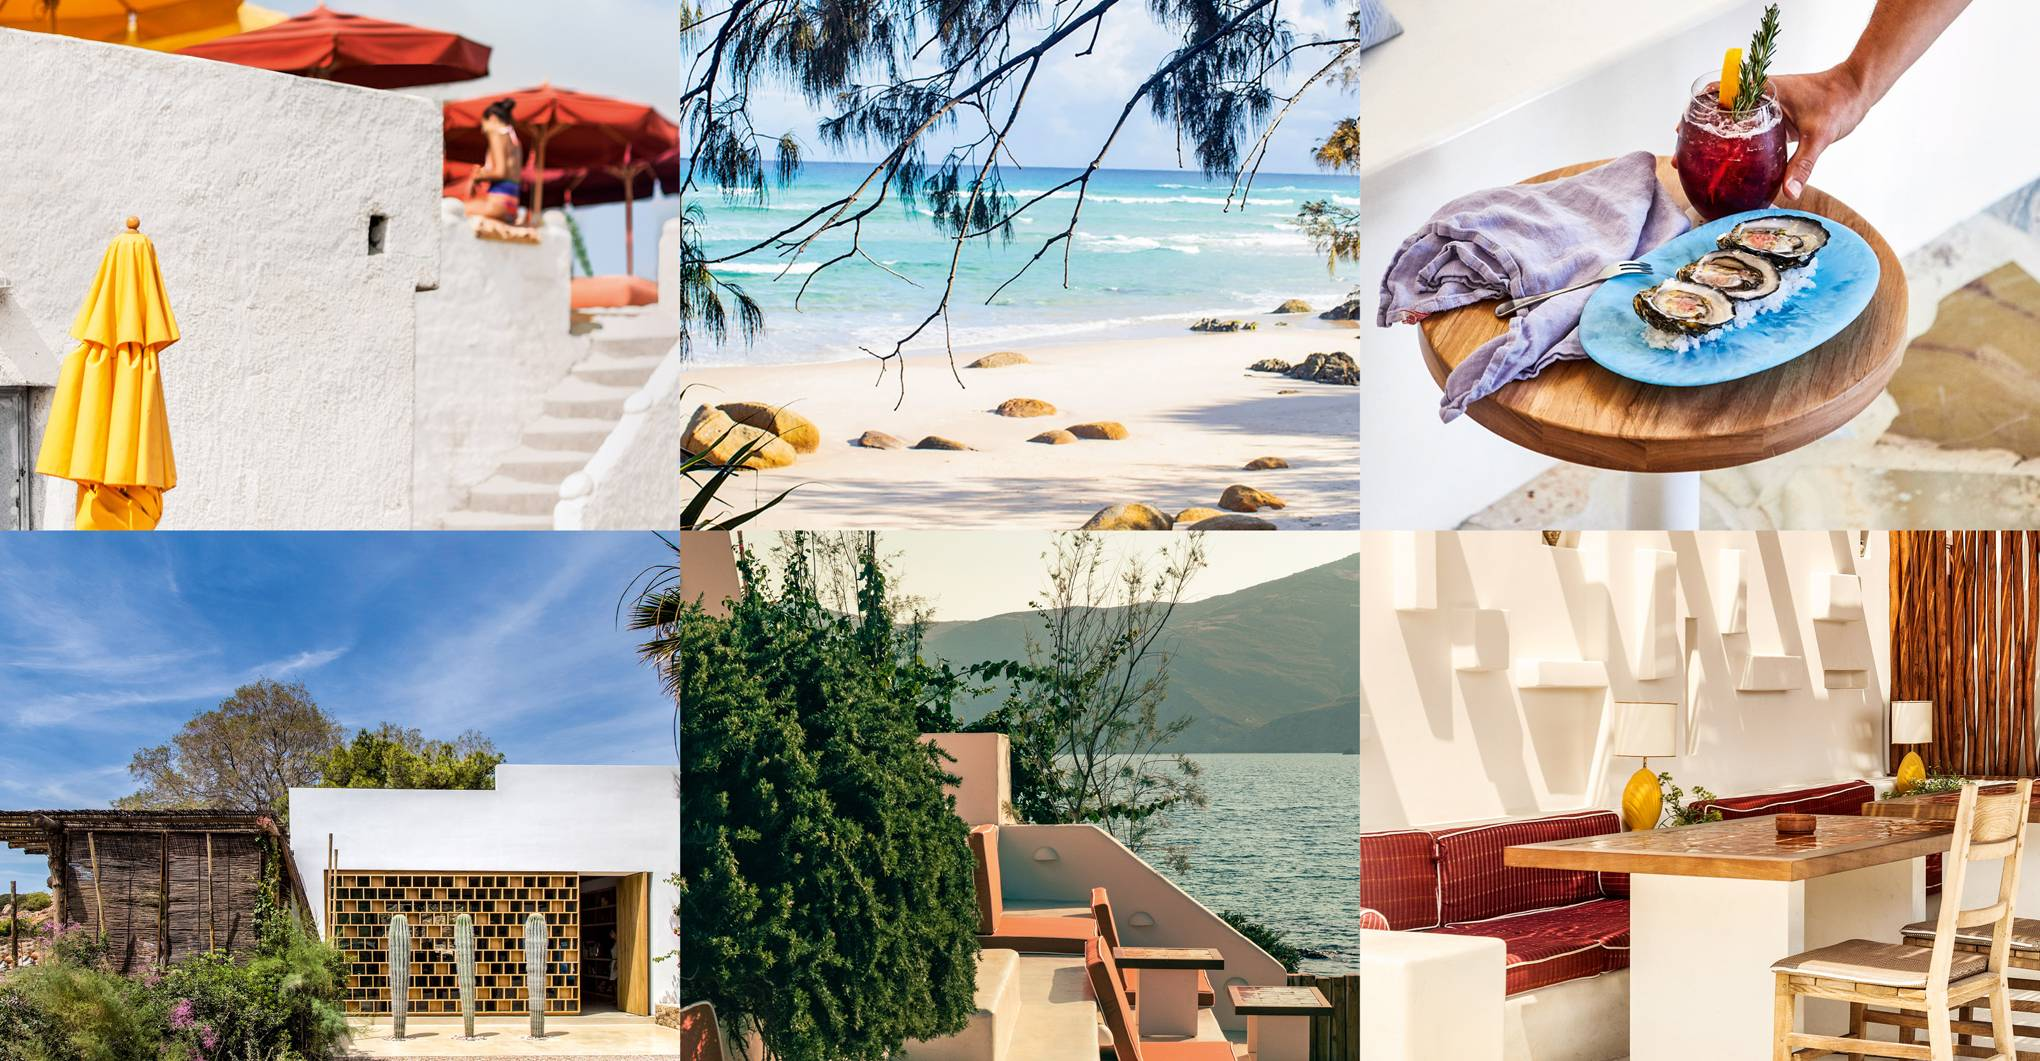 The hottest new beach clubs in the world for summer 2019